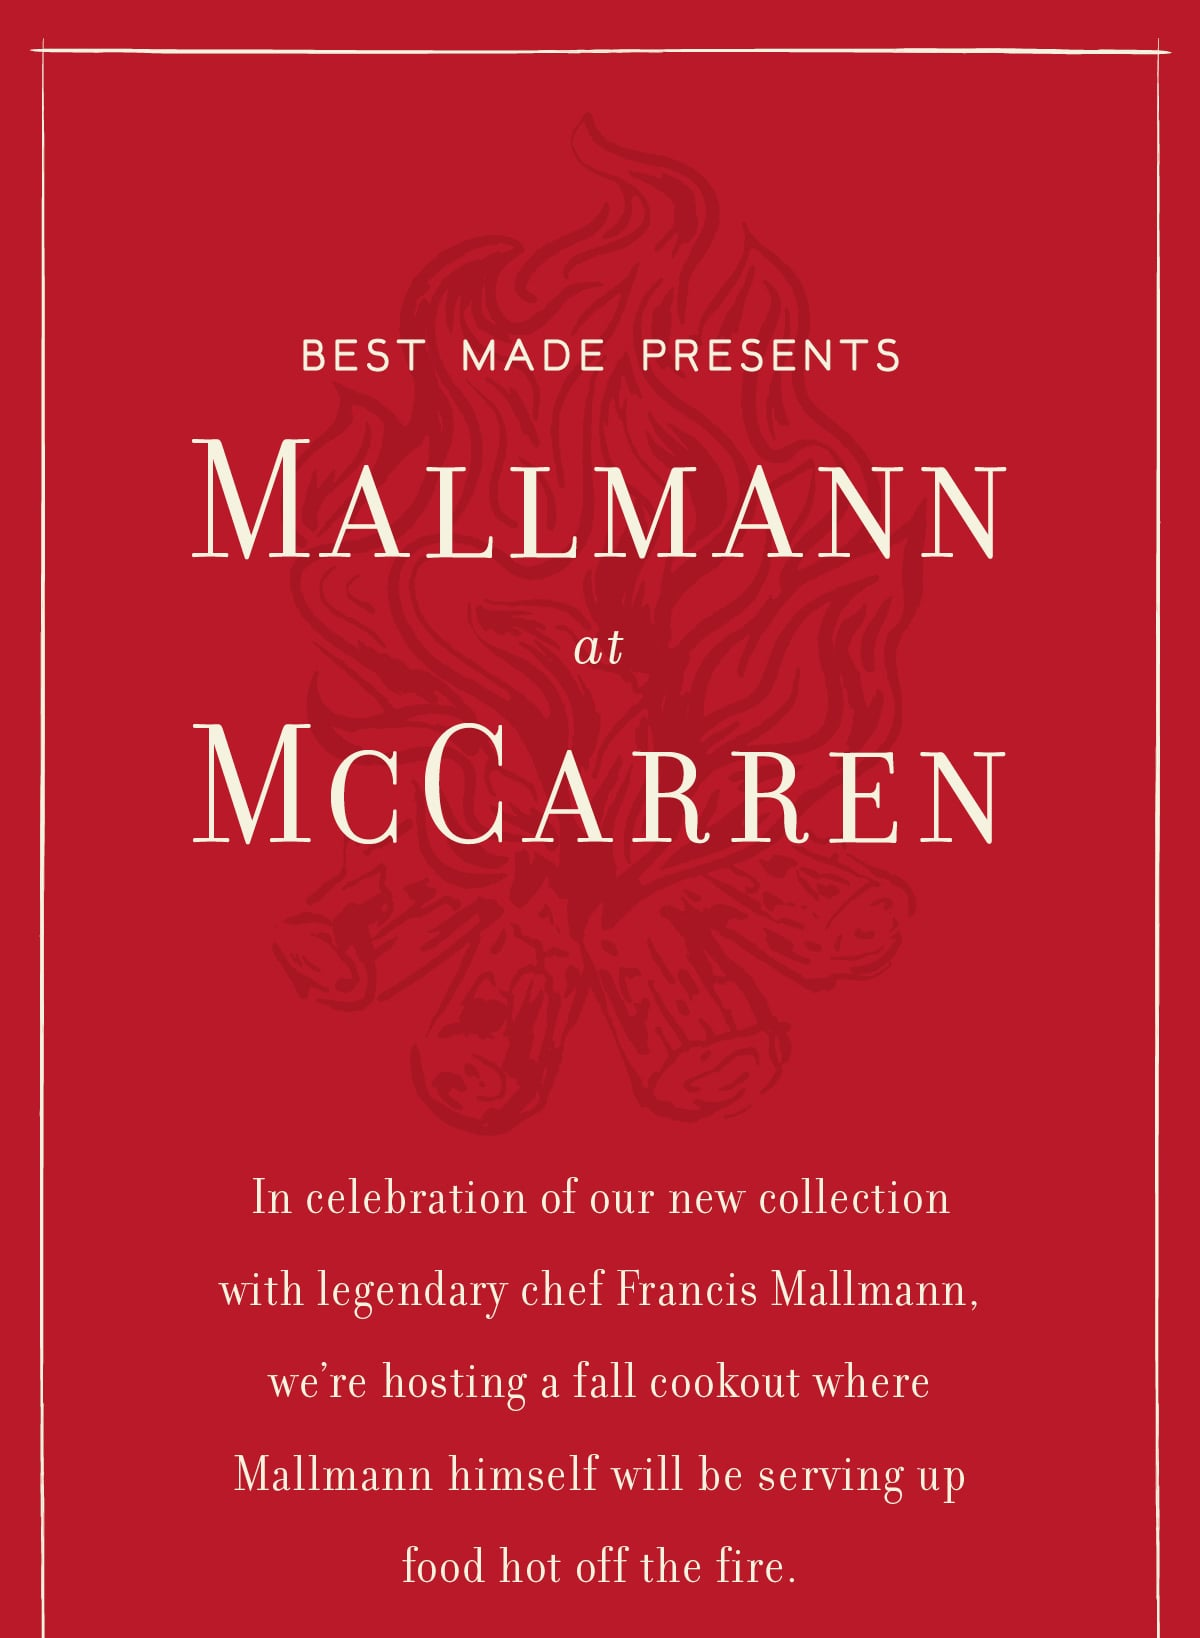 Join us at McCarren park with legendary chef Francis Mallmann on Sunday, November 17th from 12-4pm